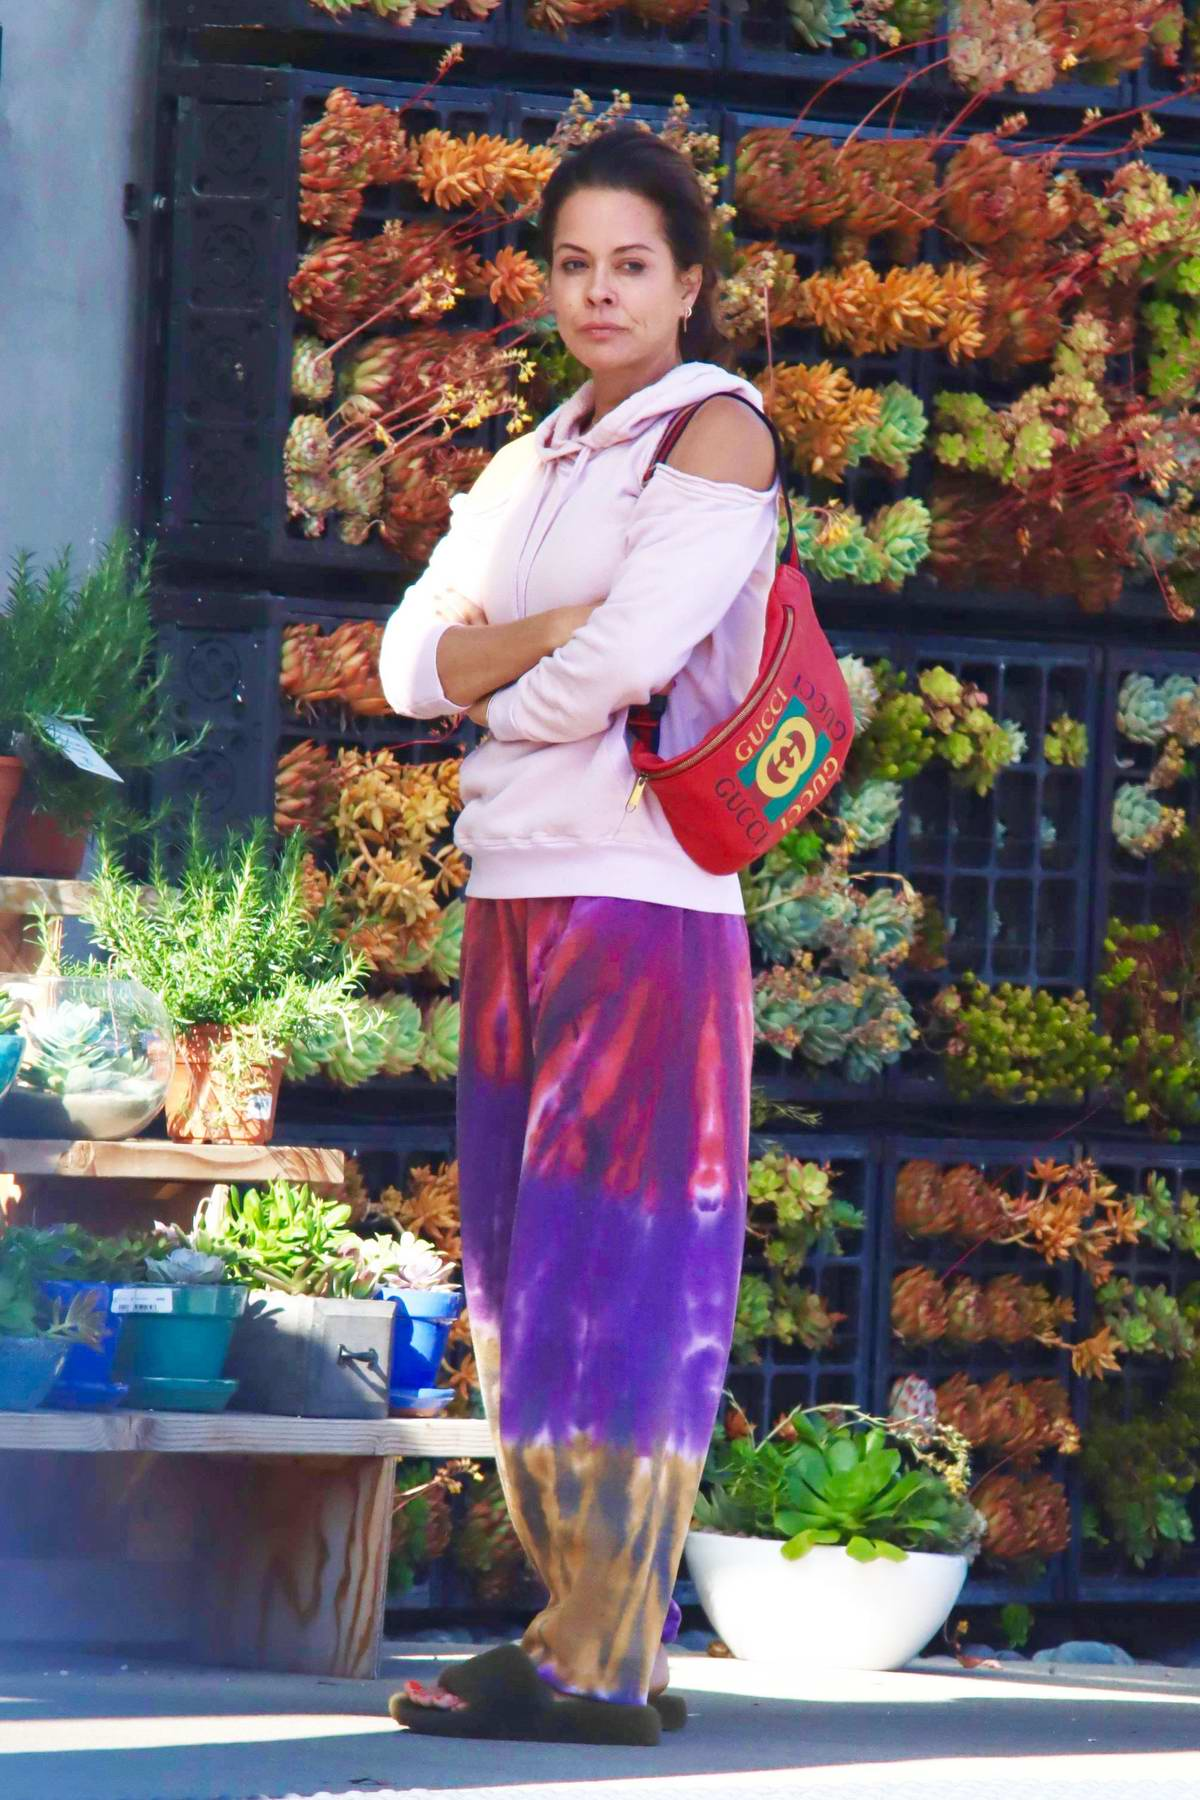 Brooke Burke dons colorful sweatpants while out shopping flowers and groceries in Malibu, California